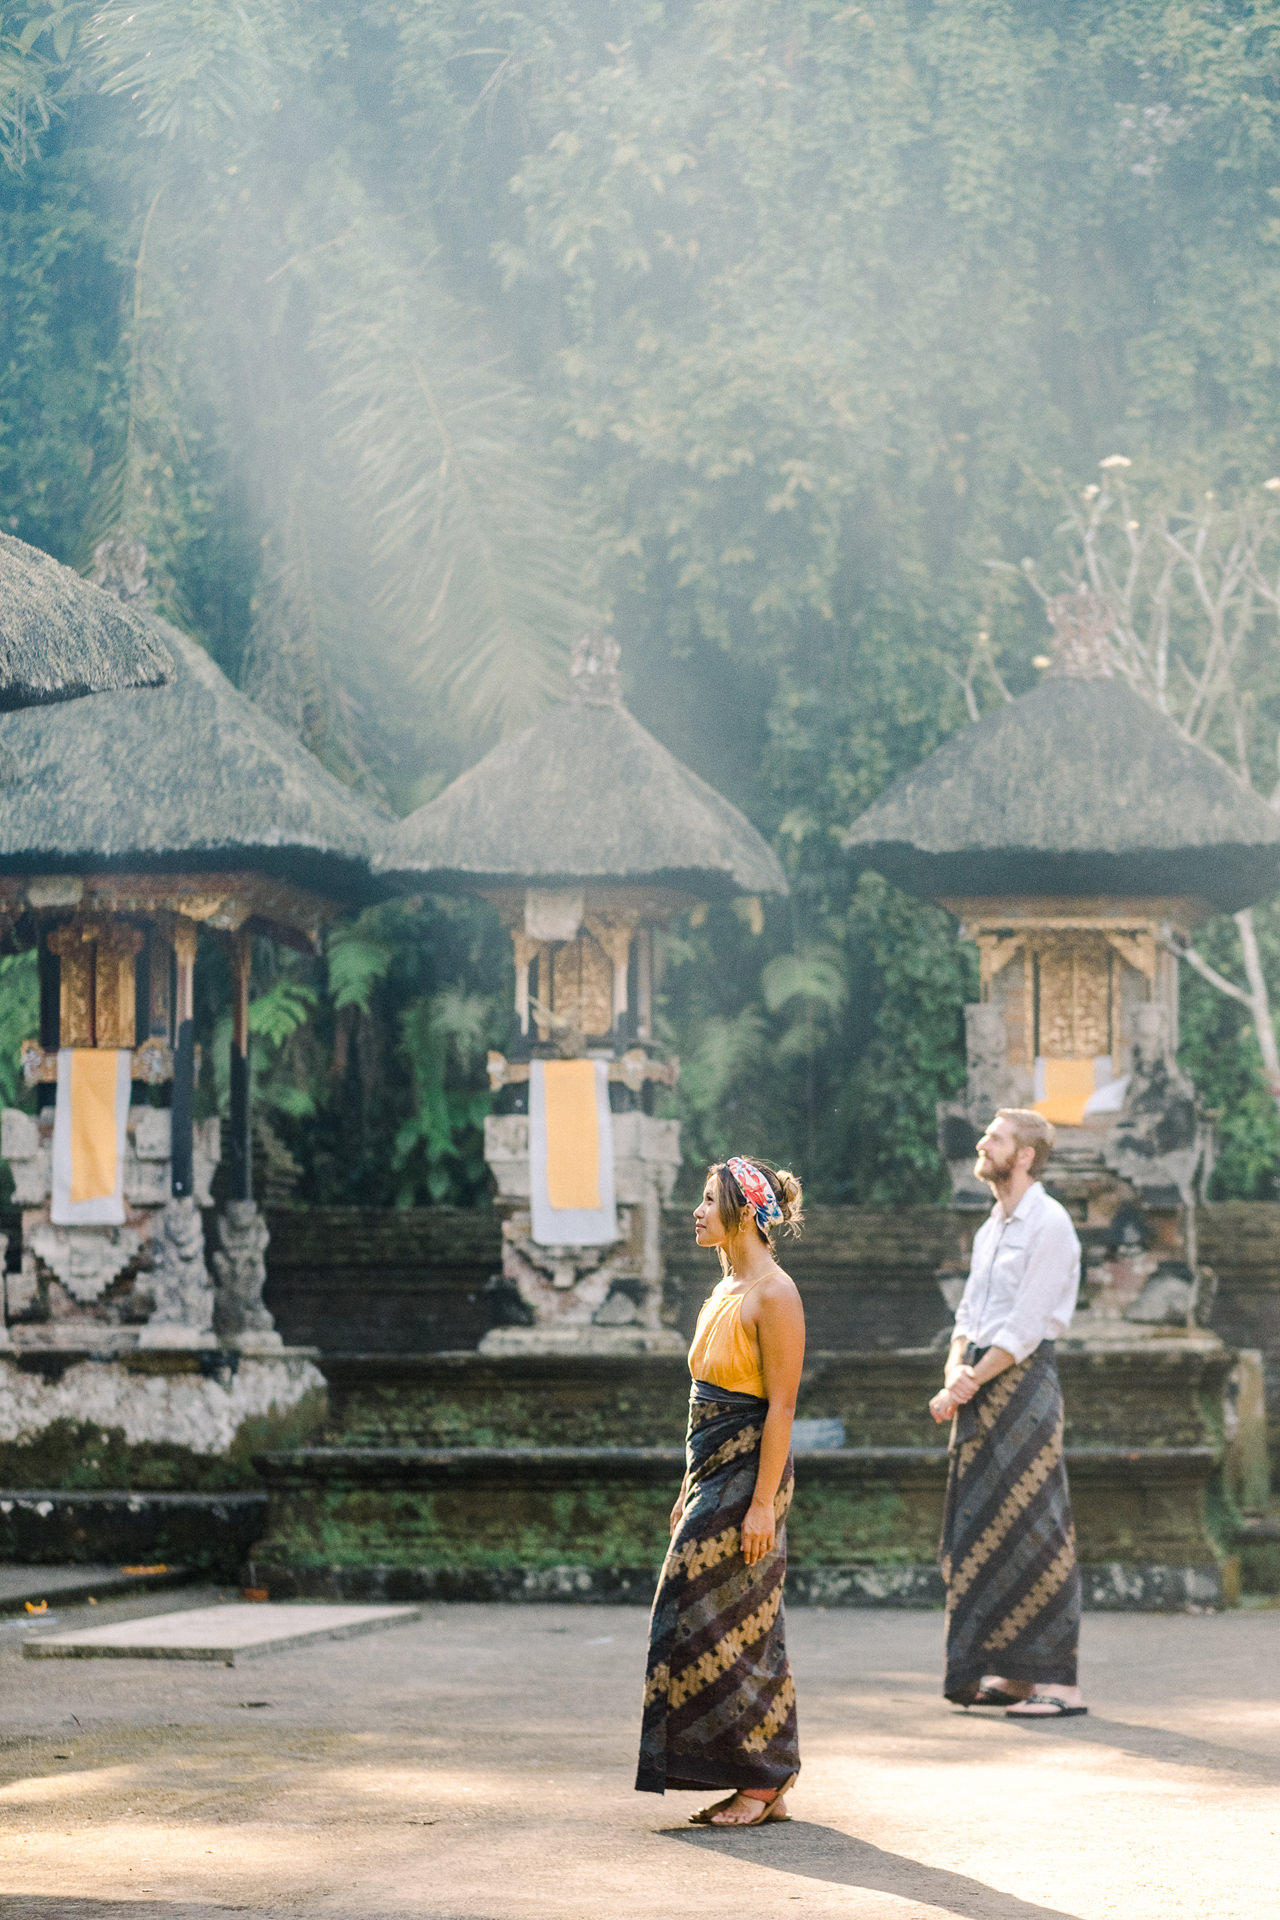 S&M: Bali Wedding Anniversary Photography 16